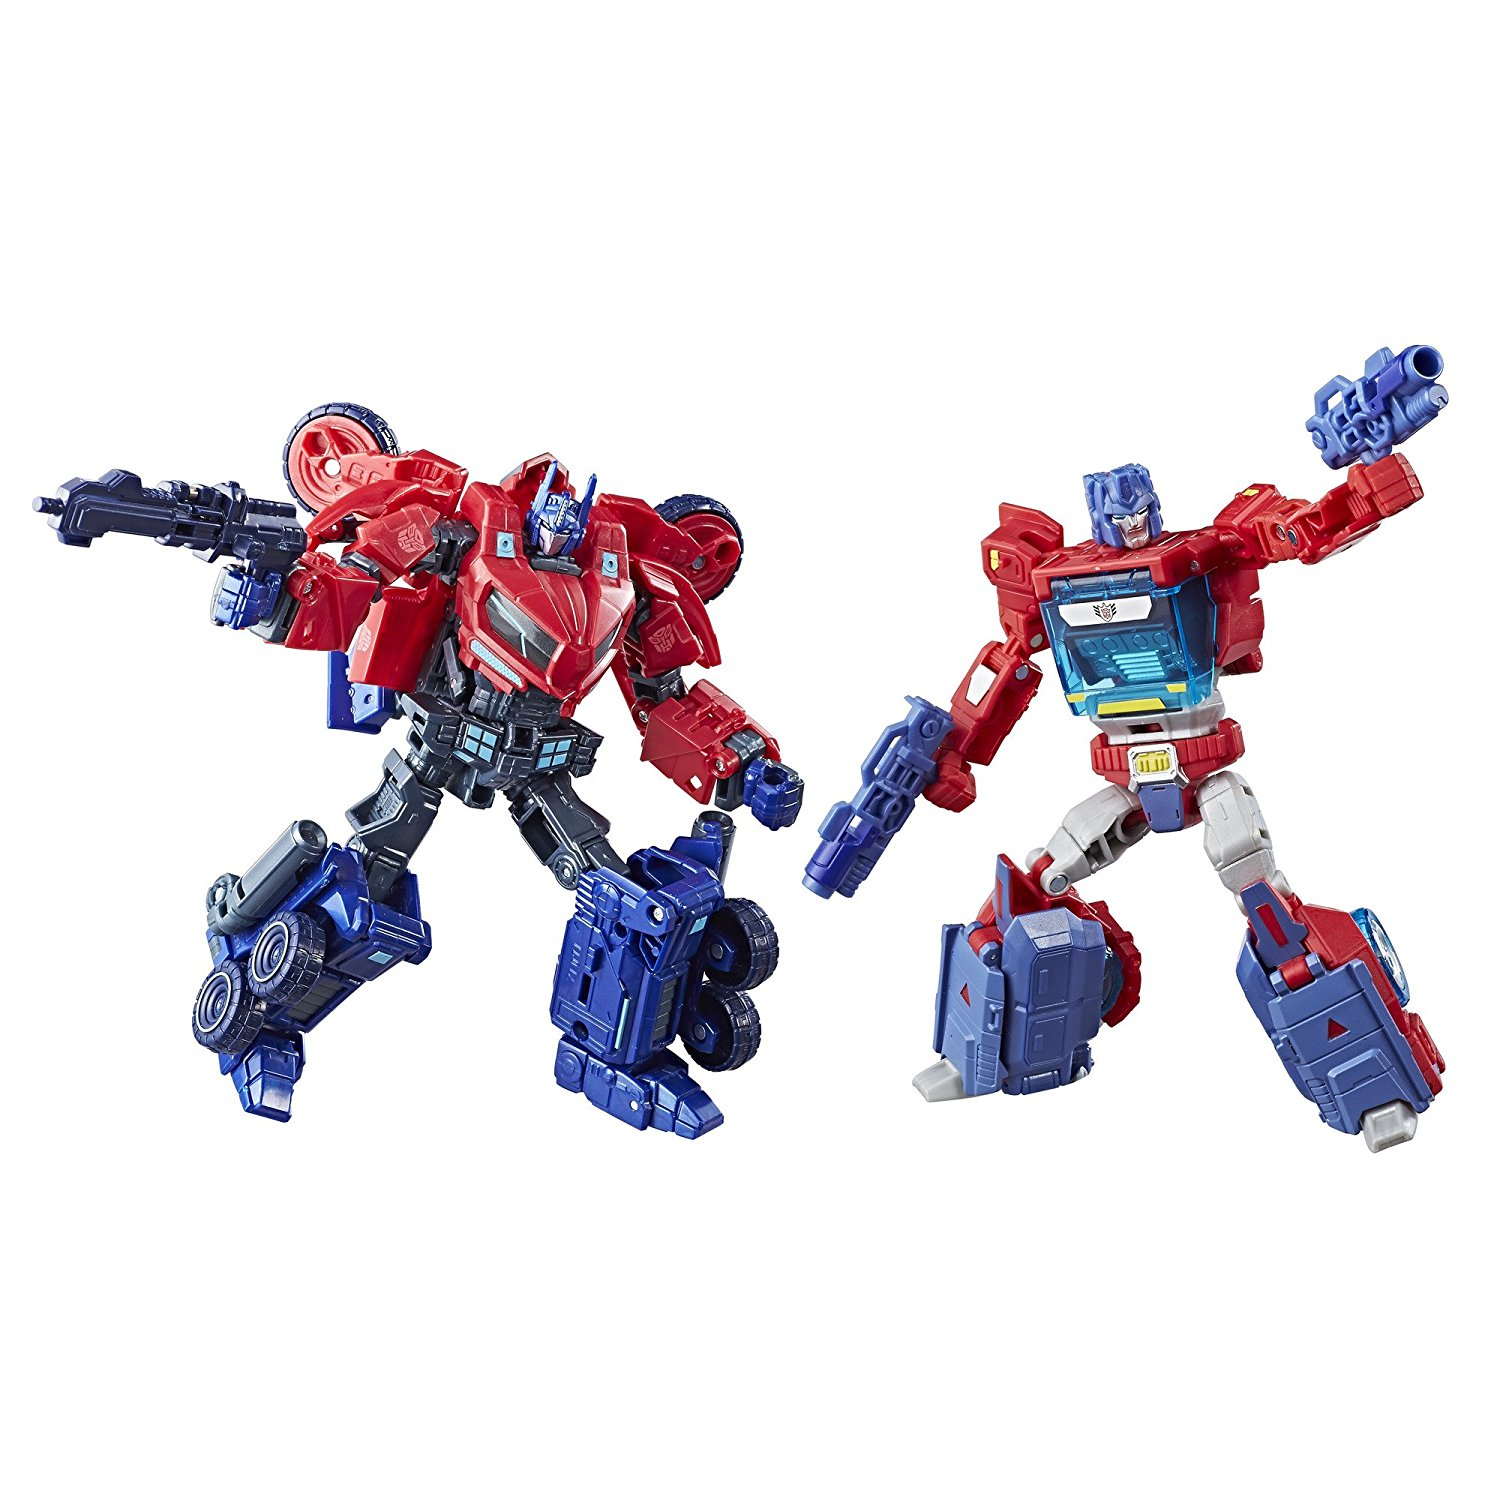 Hasbro Transformers Deluxe Class Optimus Prime Autobot Legacy 2 Pack Listed On Amazon